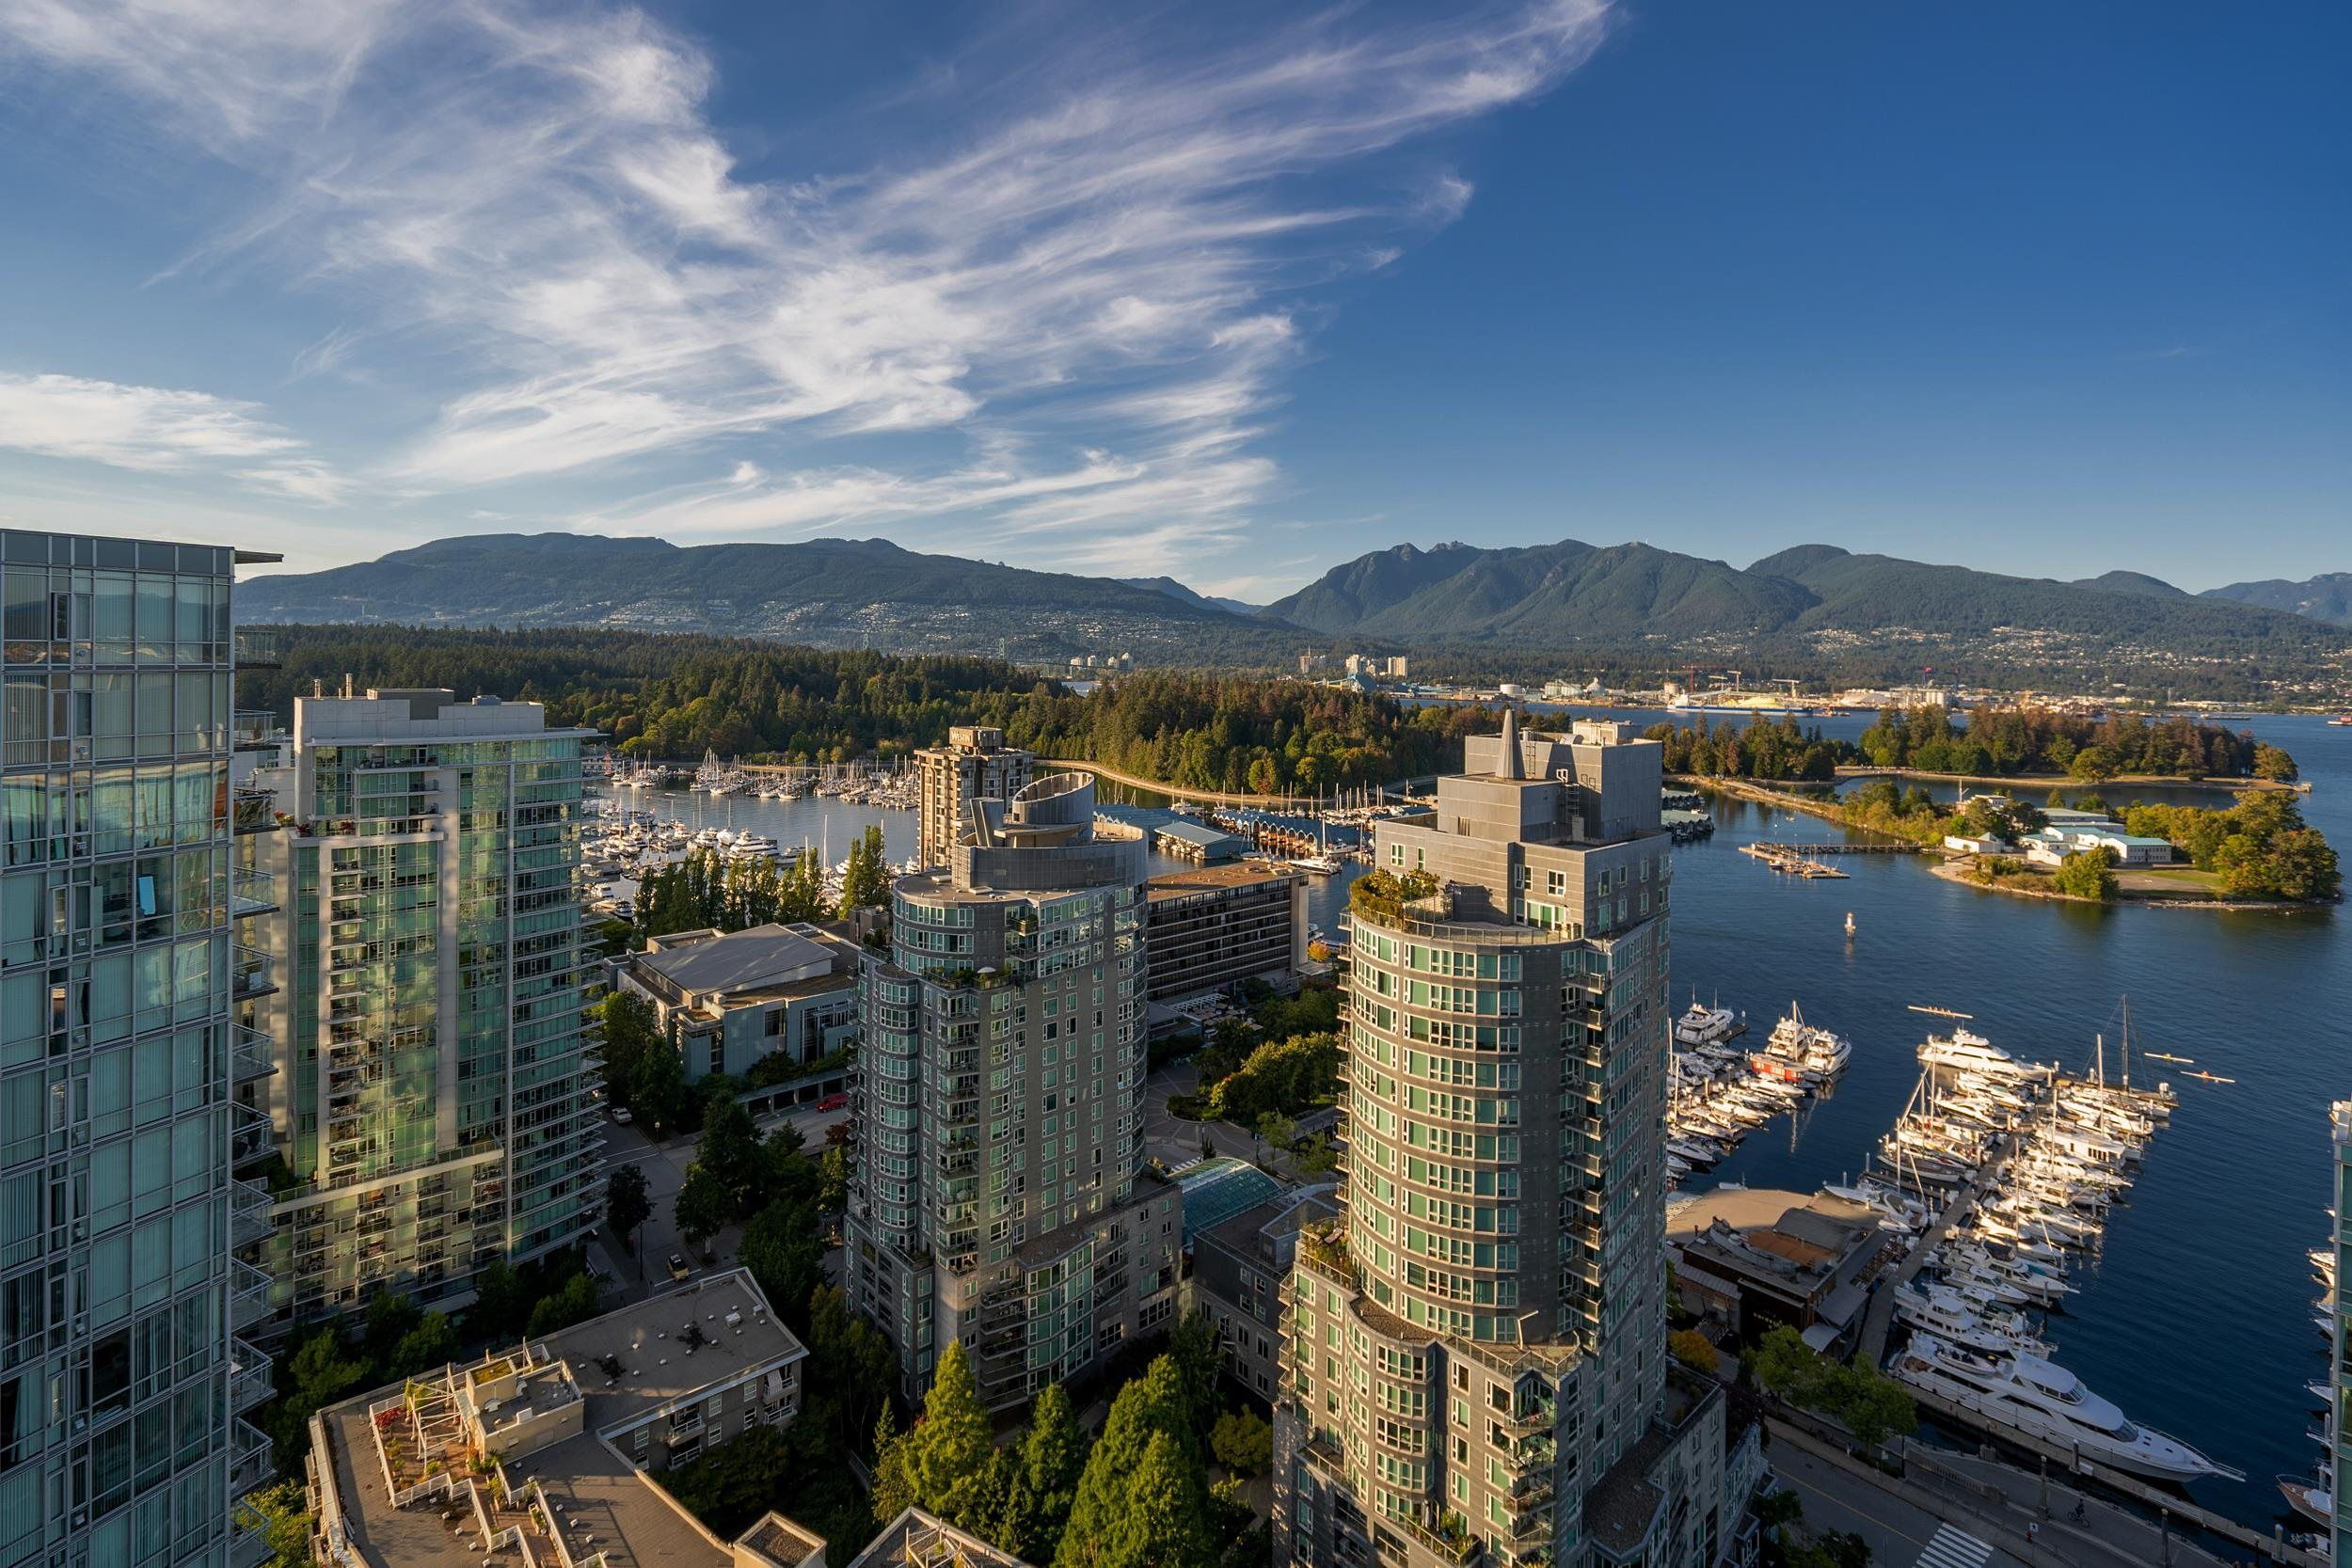 """Main Photo: 2701 1499 W PENDER Street in Vancouver: Coal Harbour Condo for sale in """"WEST PENDER PLACE"""" (Vancouver West)  : MLS®# R2614802"""